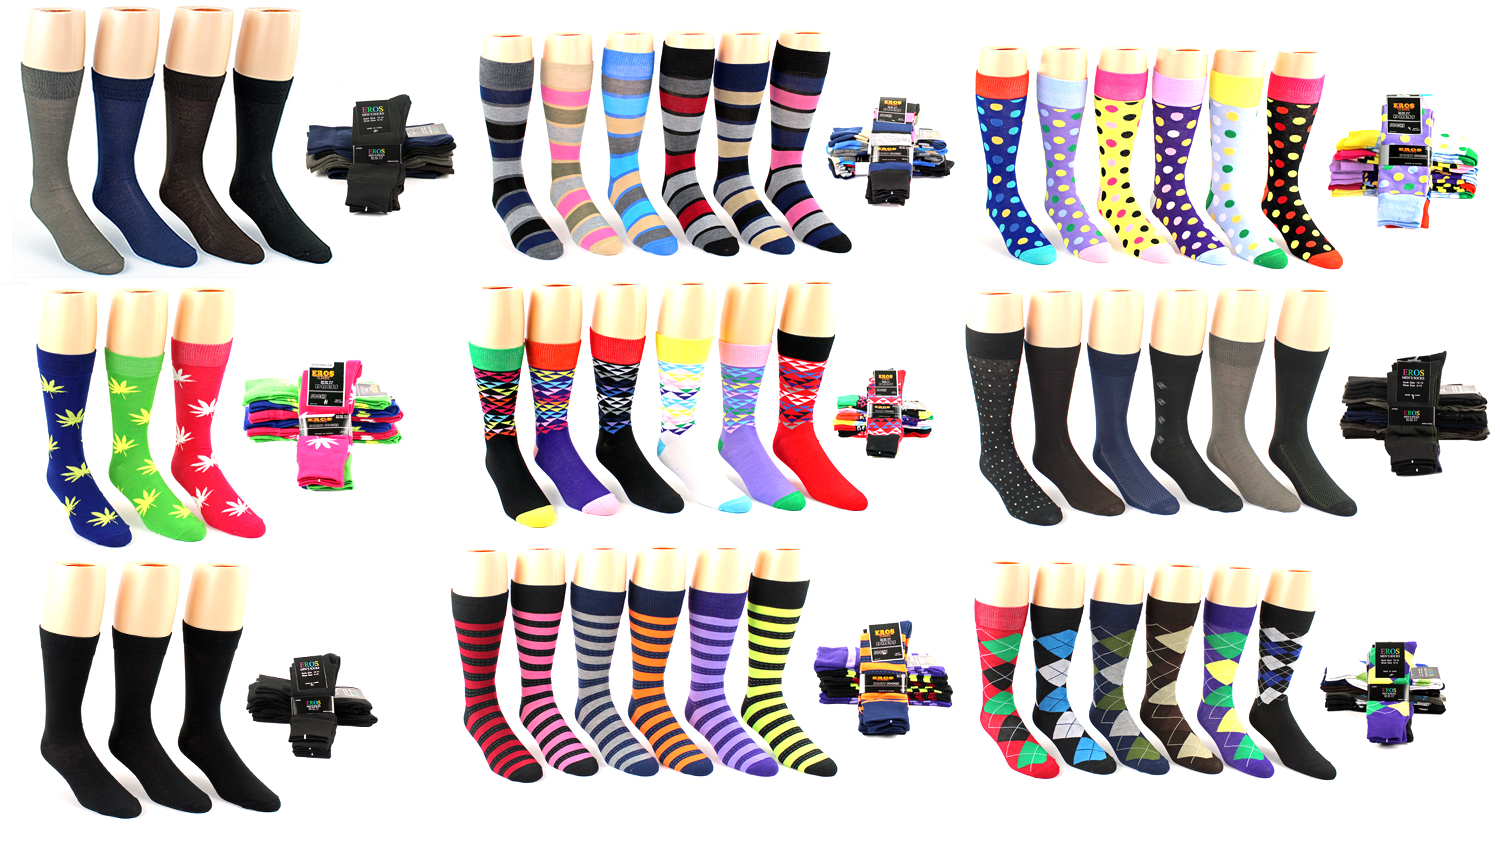 Men's Casual Crew DRESS Socks - Assorted Styles - Size 10-13